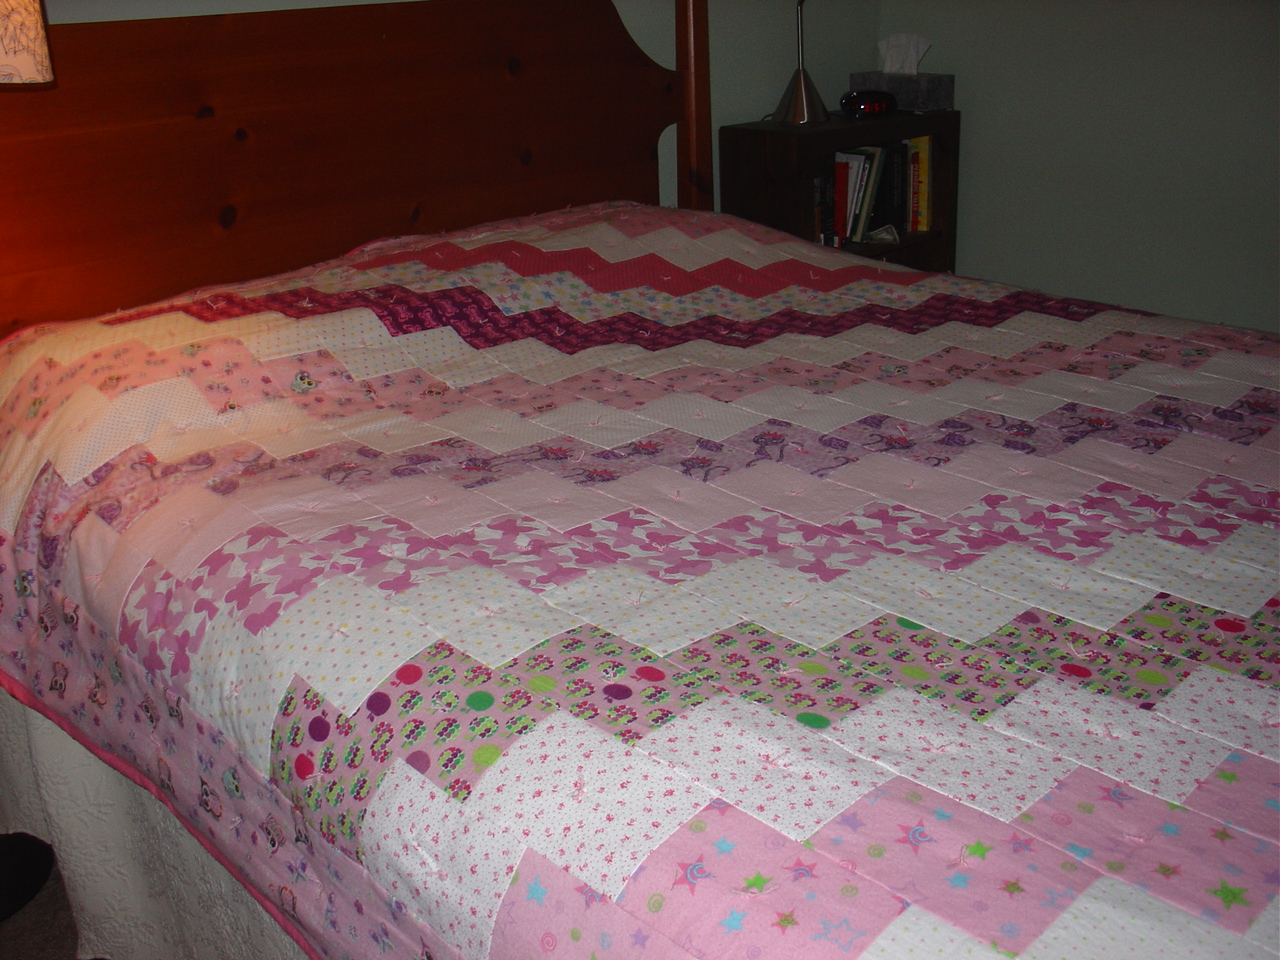 Treadlestitches tied quilts heres what the quilt looks like on a queen sized bed it is huge which is one of the reasons i decided to tie it instead of trying to machine quilt it ccuart Image collections